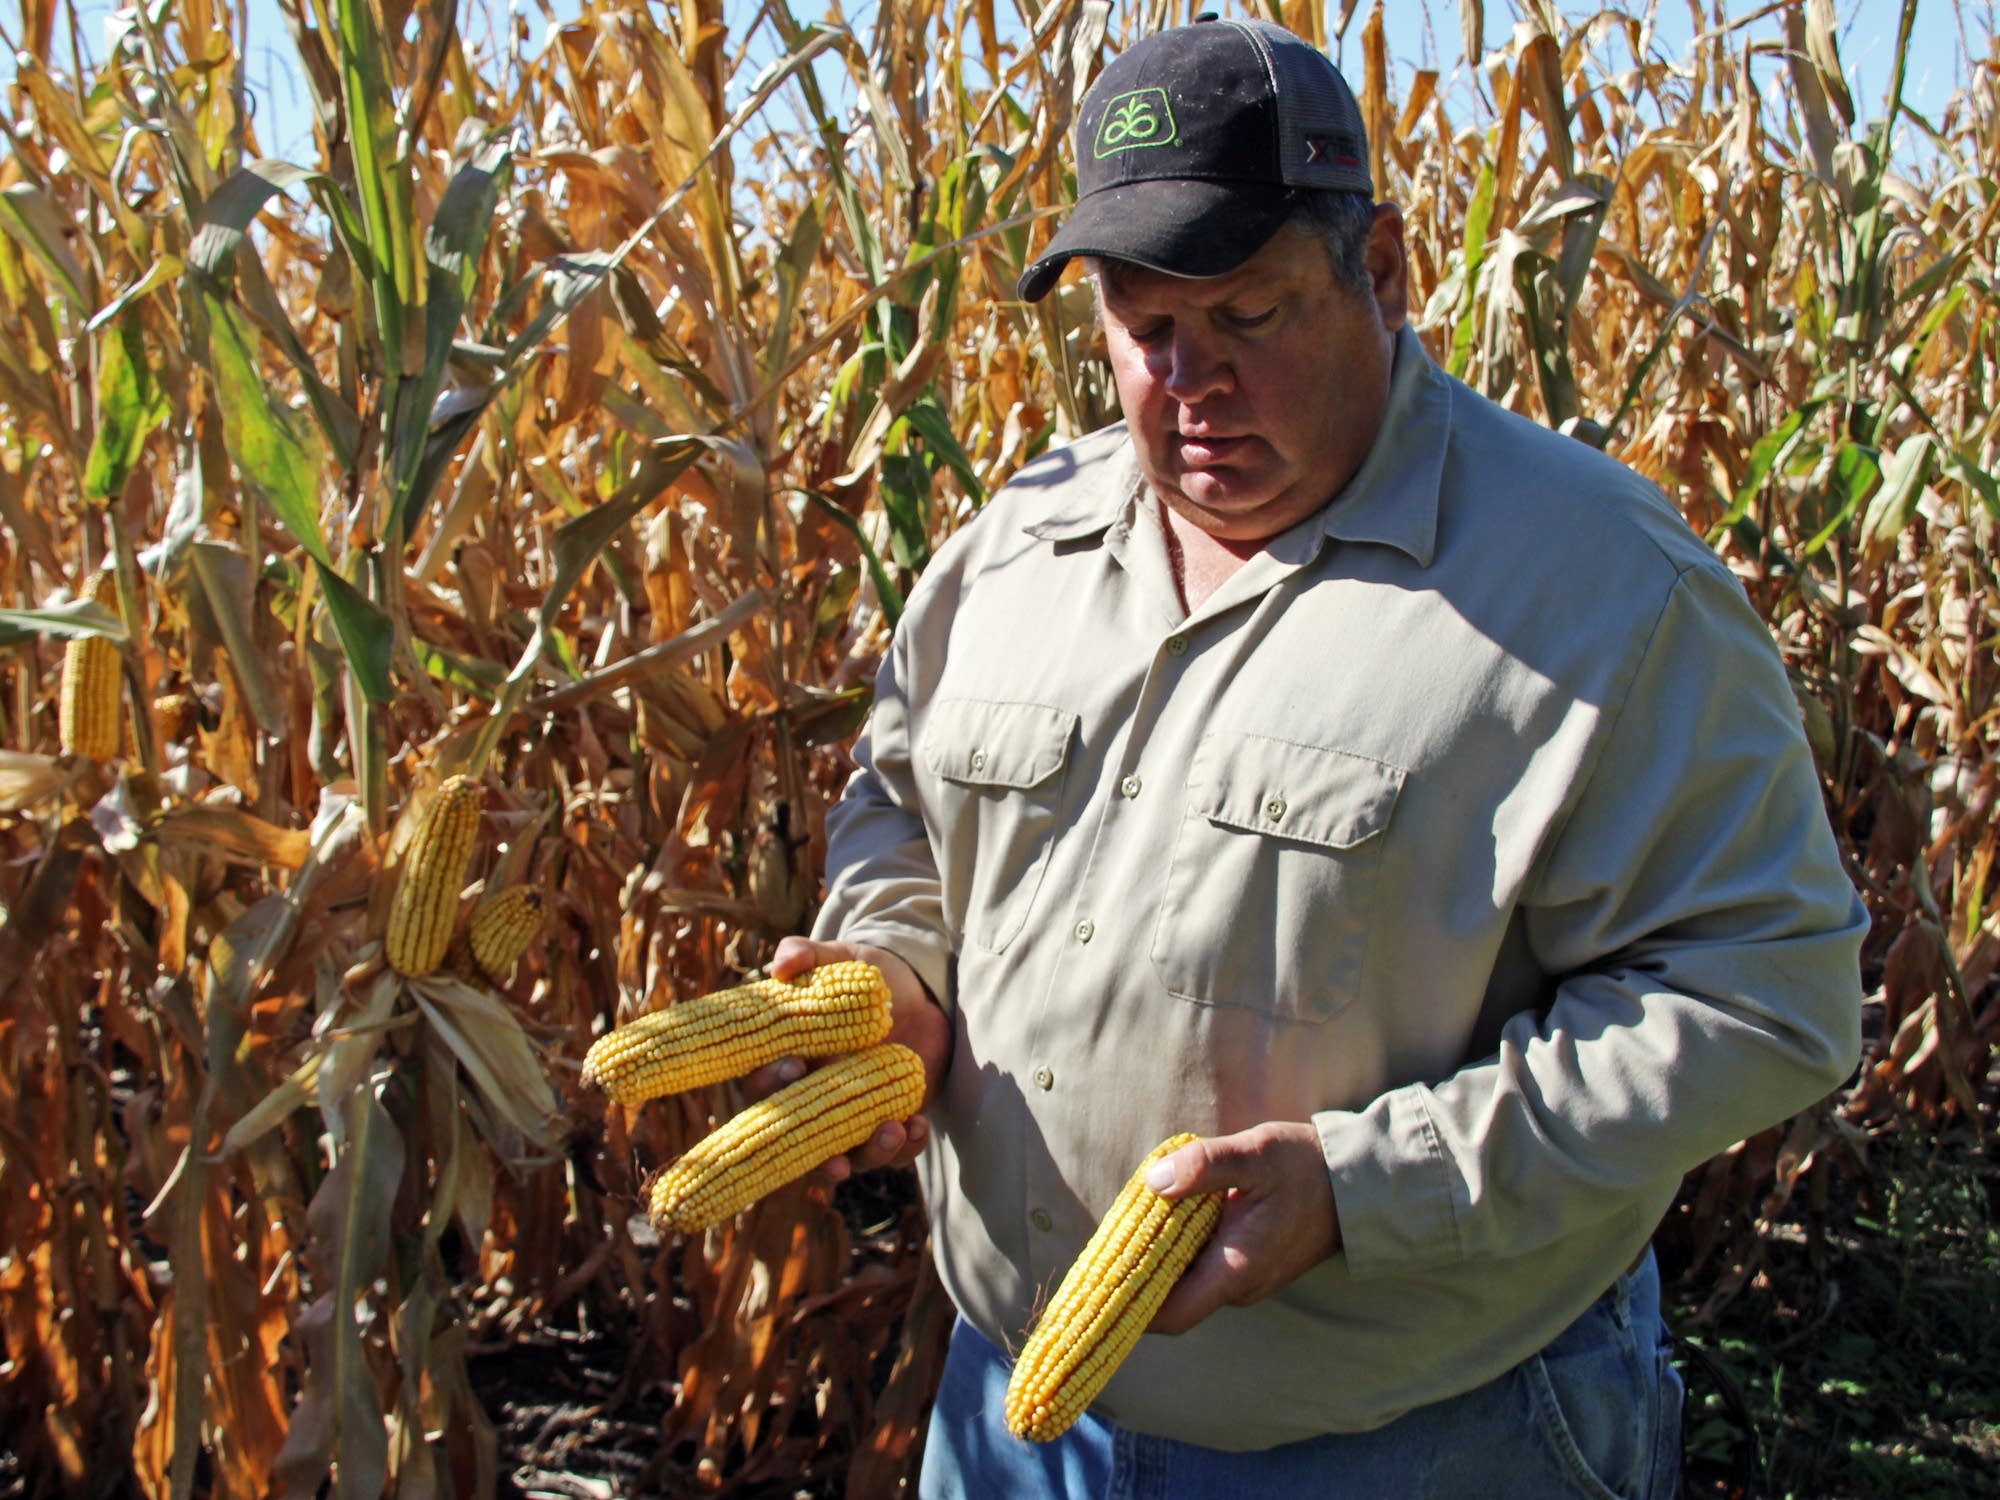 Paap says 1/3 of his corn is sold outside U.S.